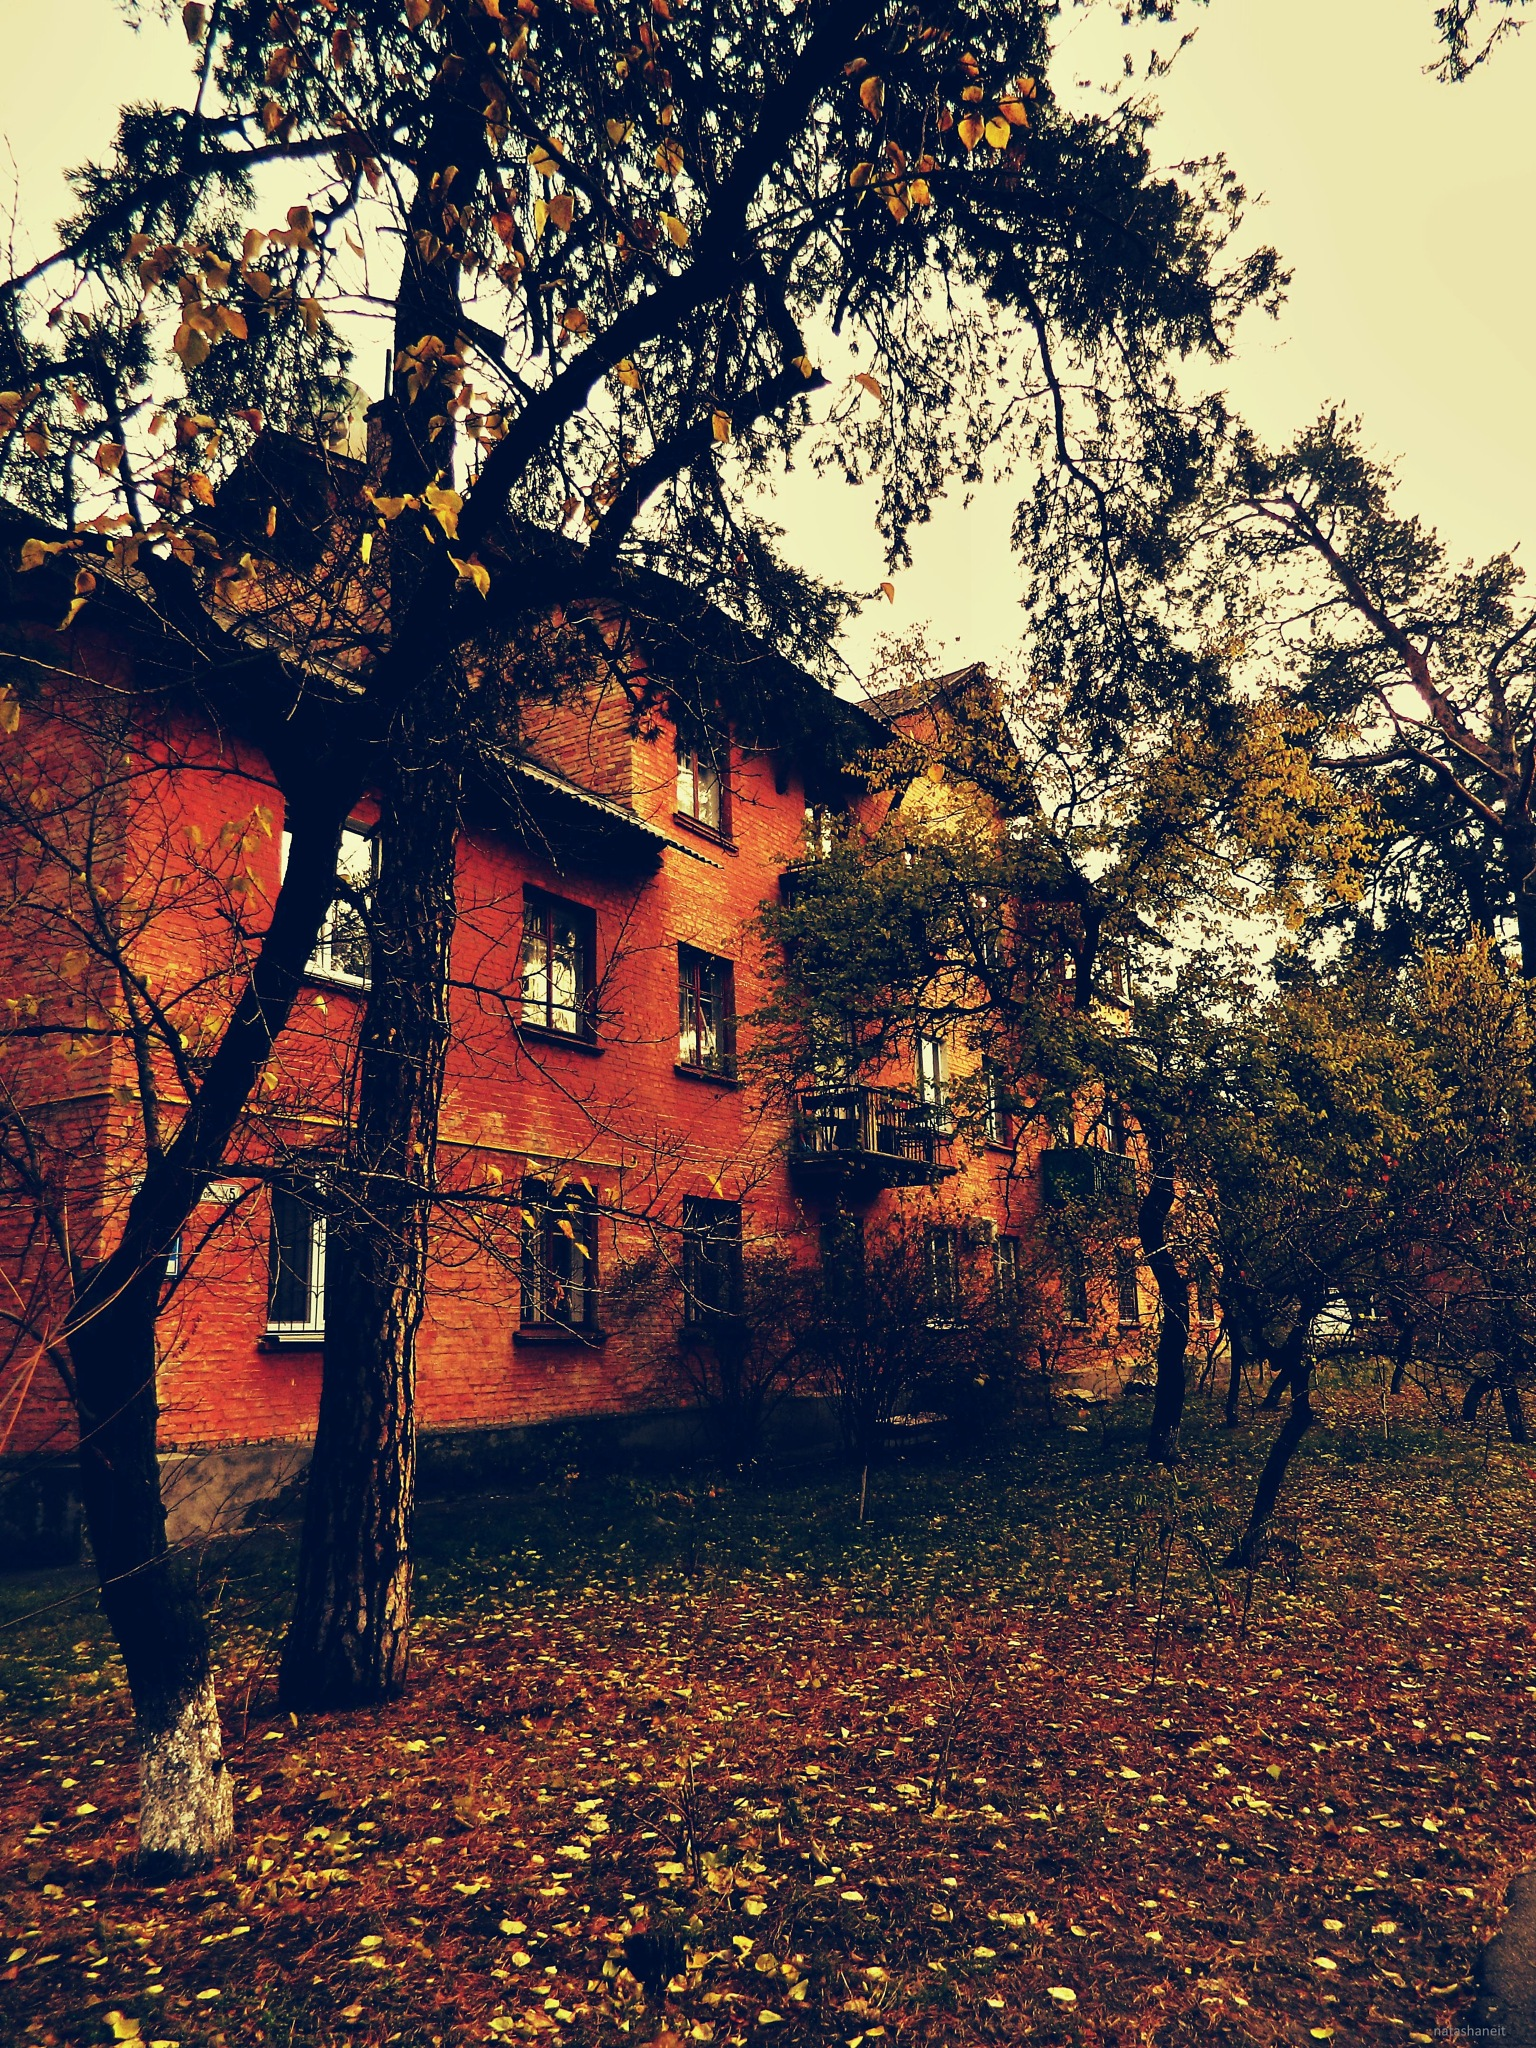 A three-storey house on the autumn street by natashaneit